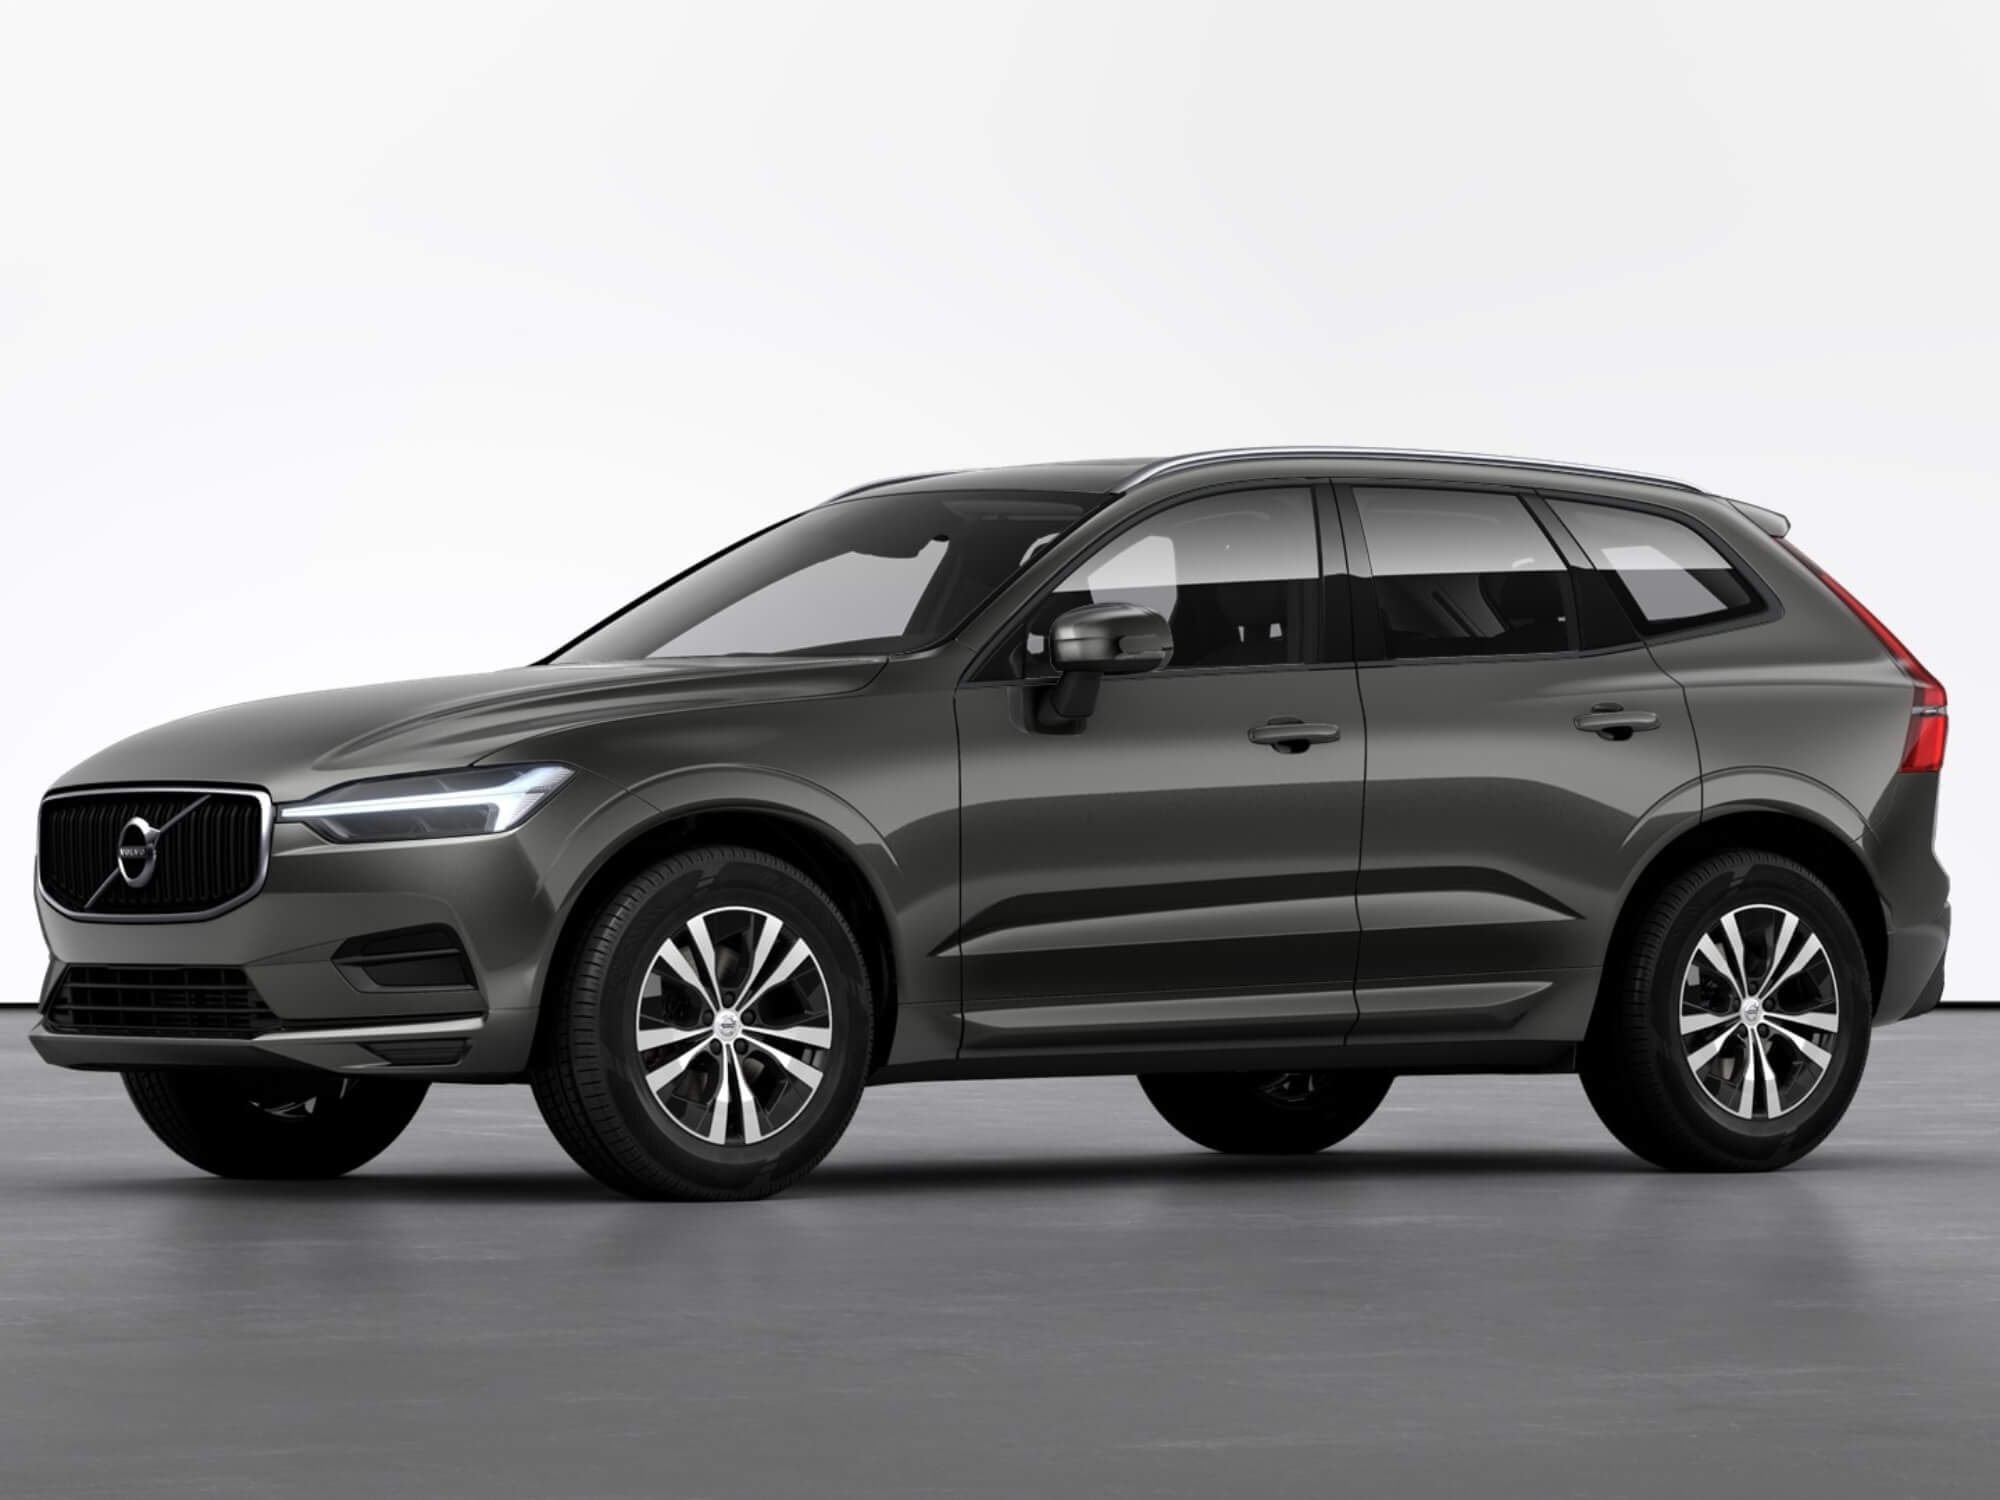 Volvo XC60 B5 Momentum Advantage Exclusive